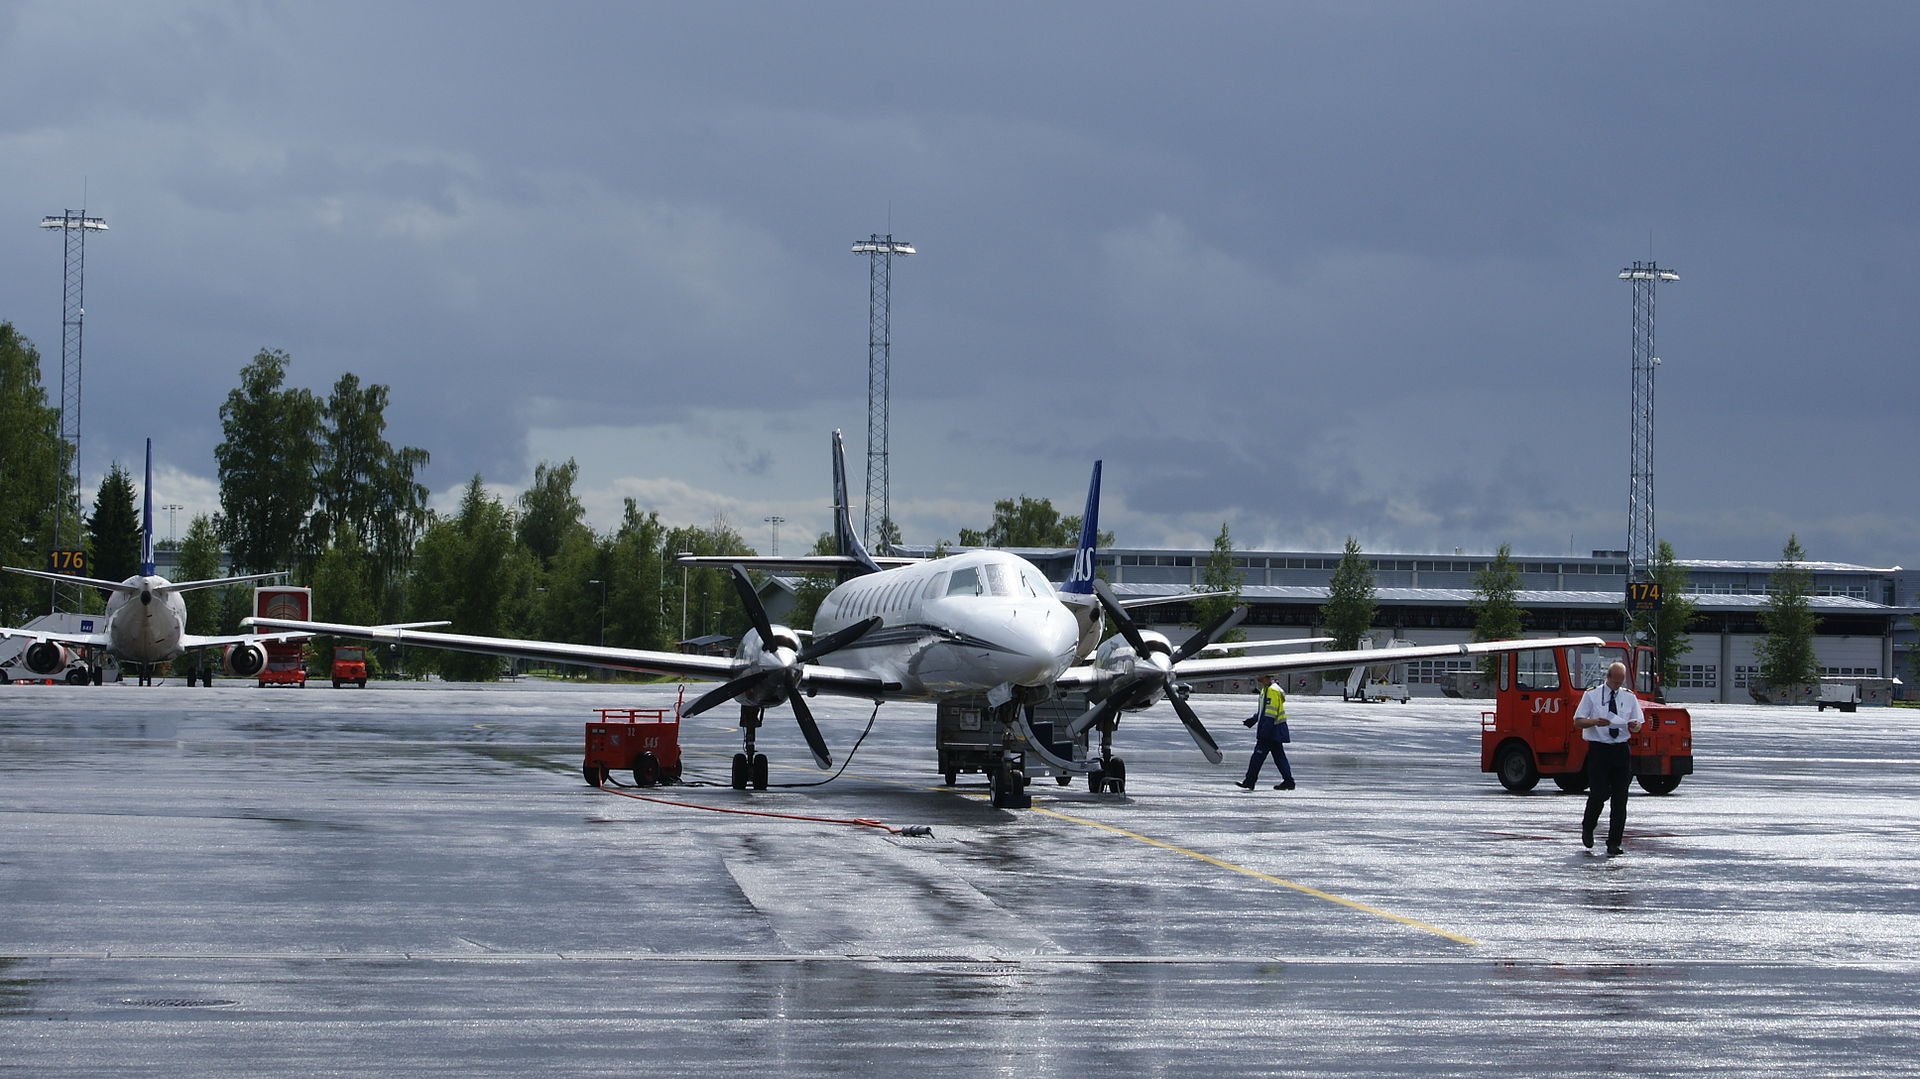 Air Norway Fairchild Metroliner i Oslo Lufthavn. (Foto: Algkalv)